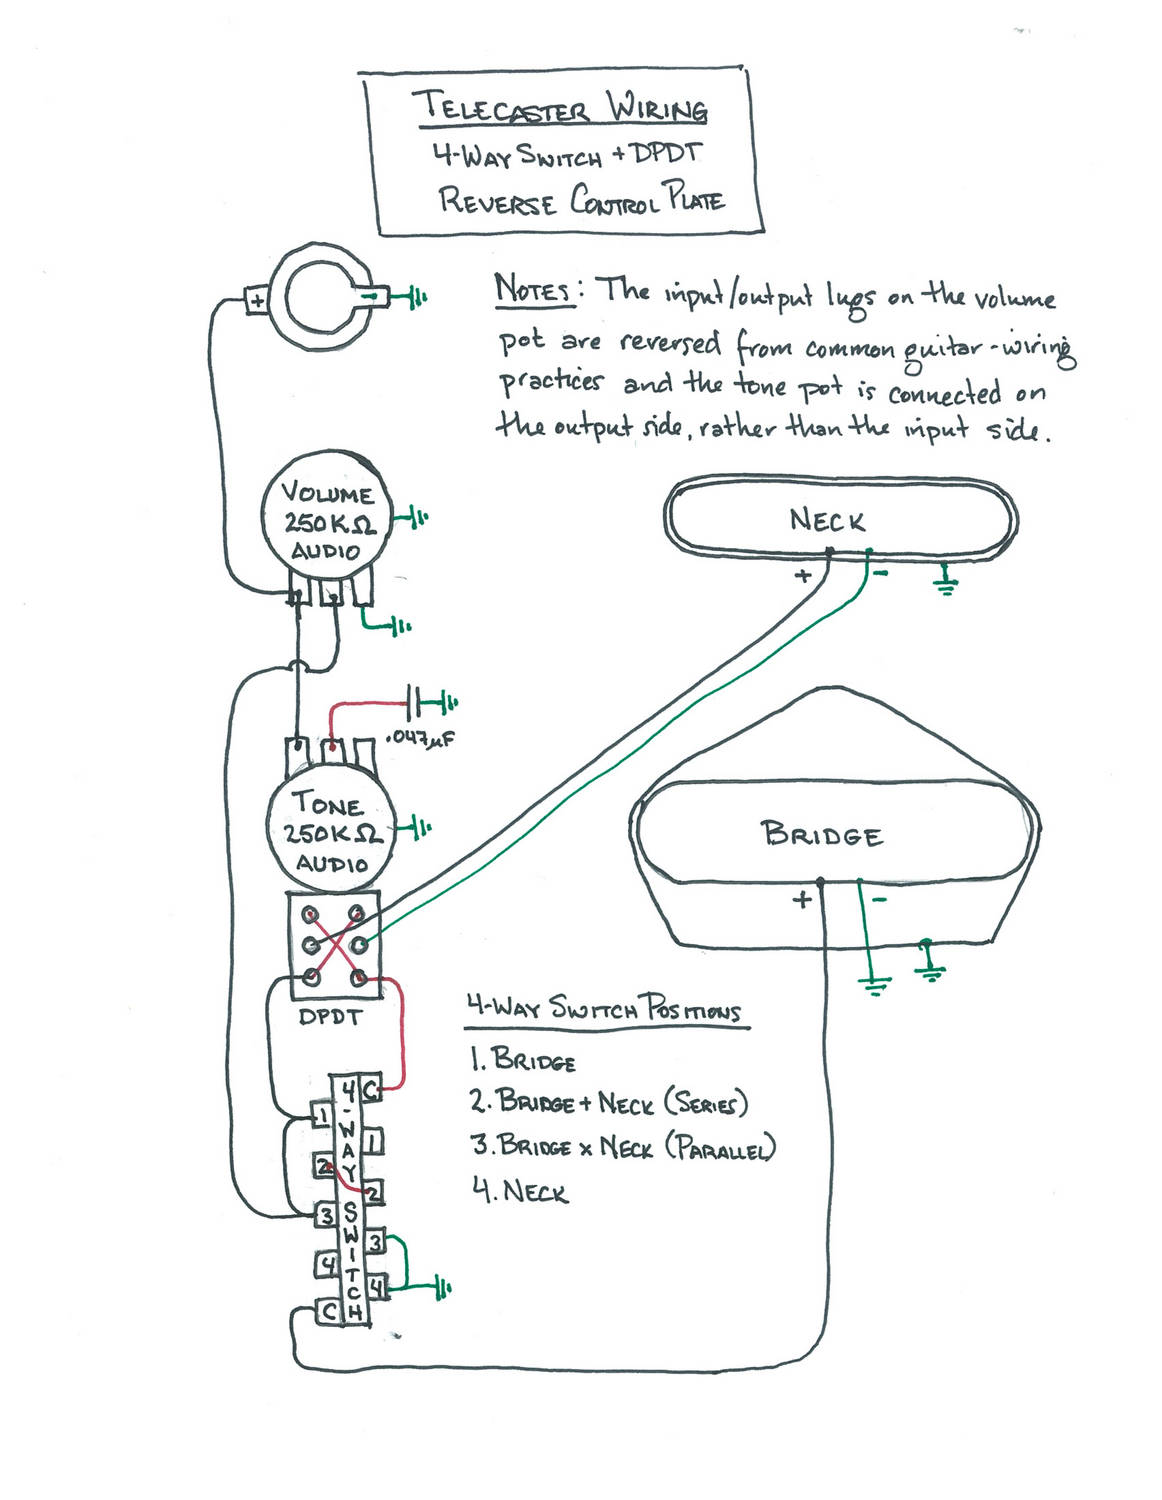 1971 Fender Telecaster Wiring Diagram Third Level Standard Also Tele Humbucker Data Bass